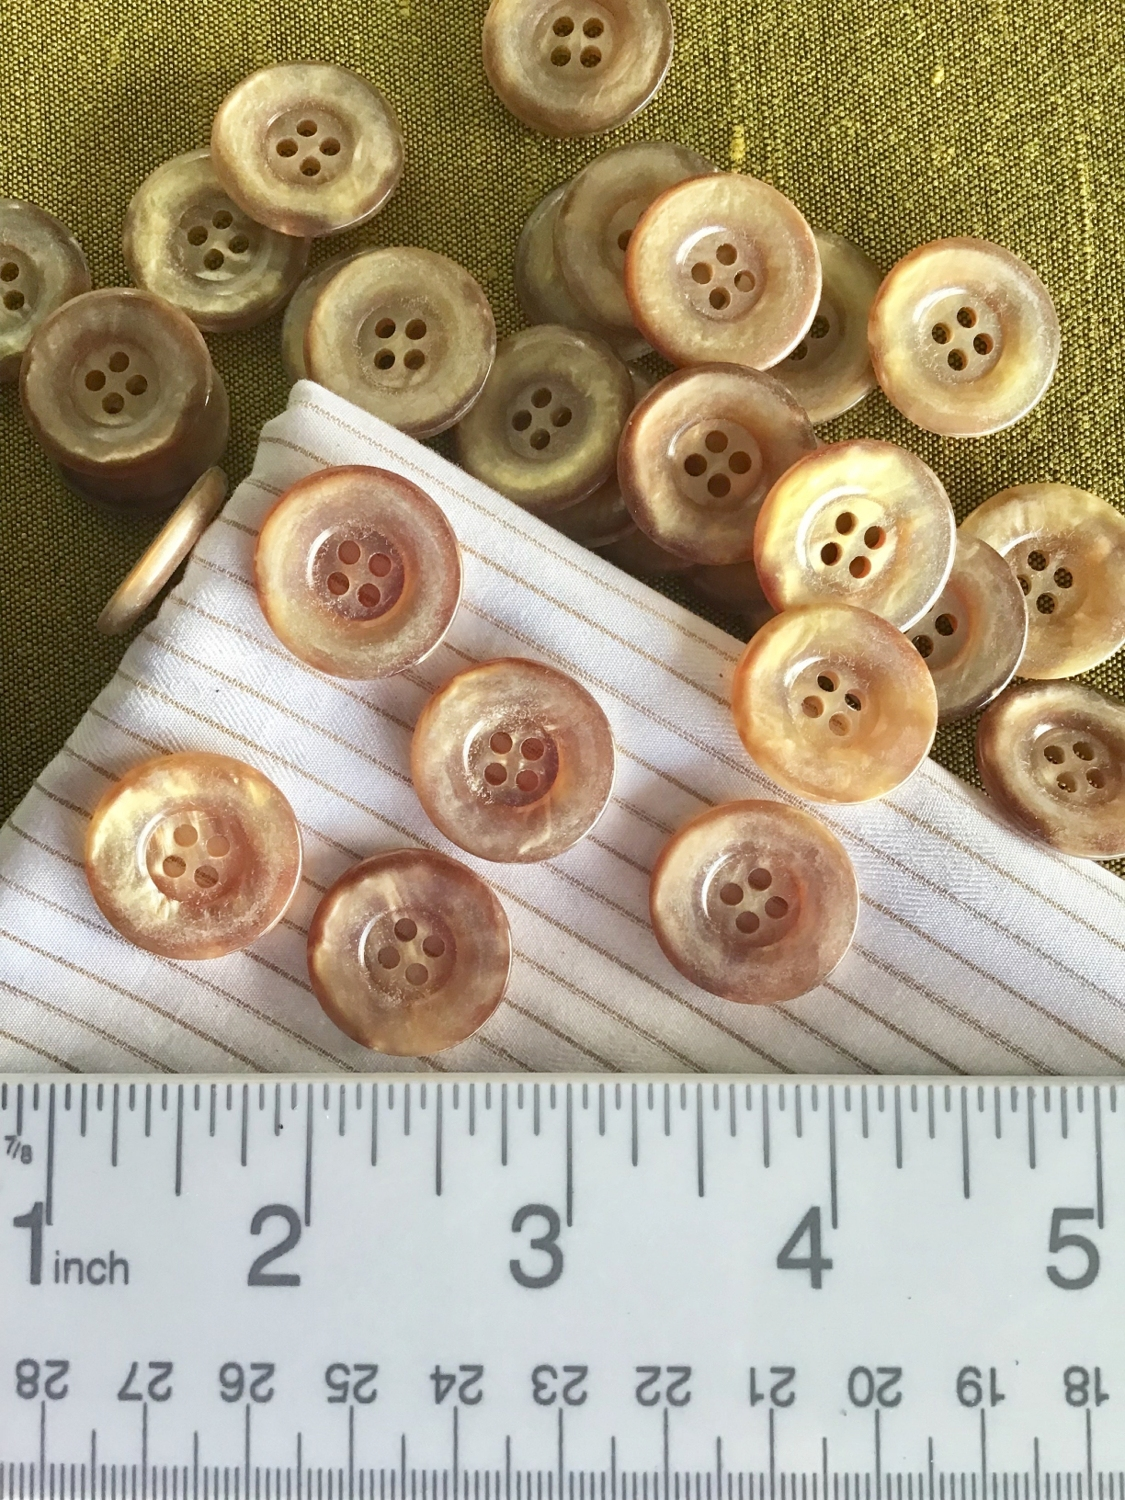 Lot of 6 buttons Brown Satin Pearl effect  4 hole buttons 3 sizes available 58,12,716.